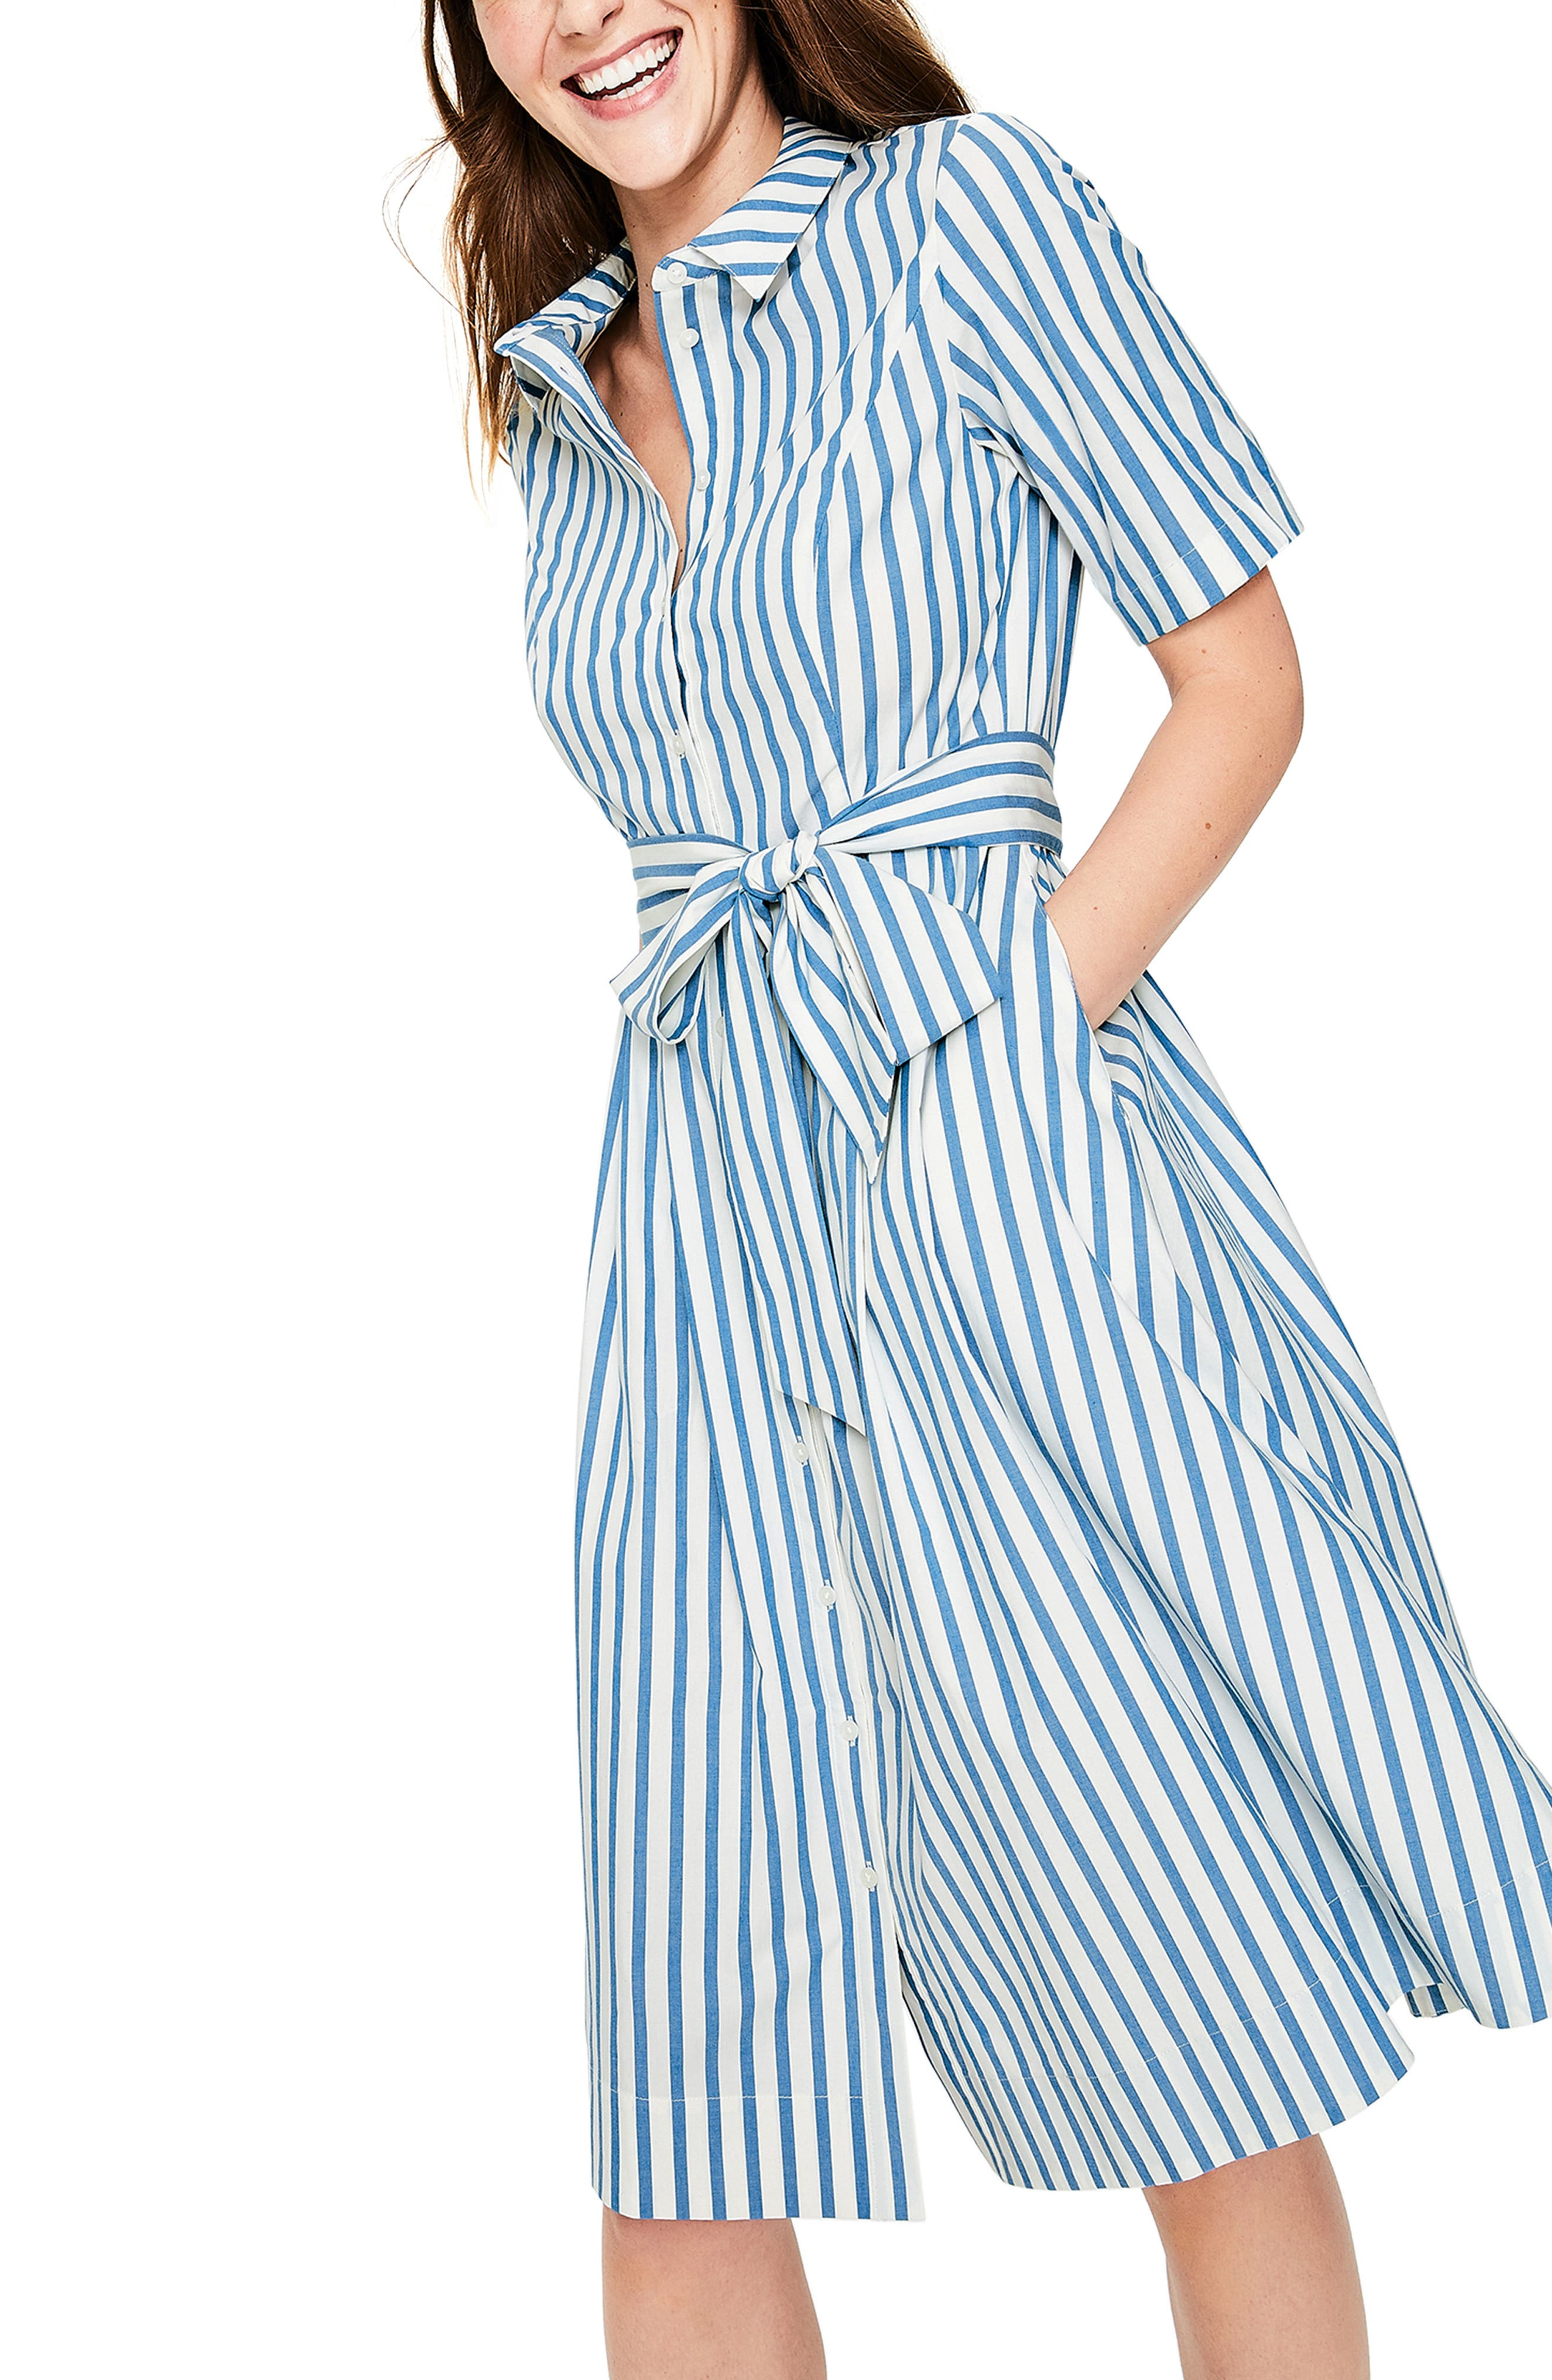 BODEN Anastasia Tie Front Shirtdress, Main, color, 454